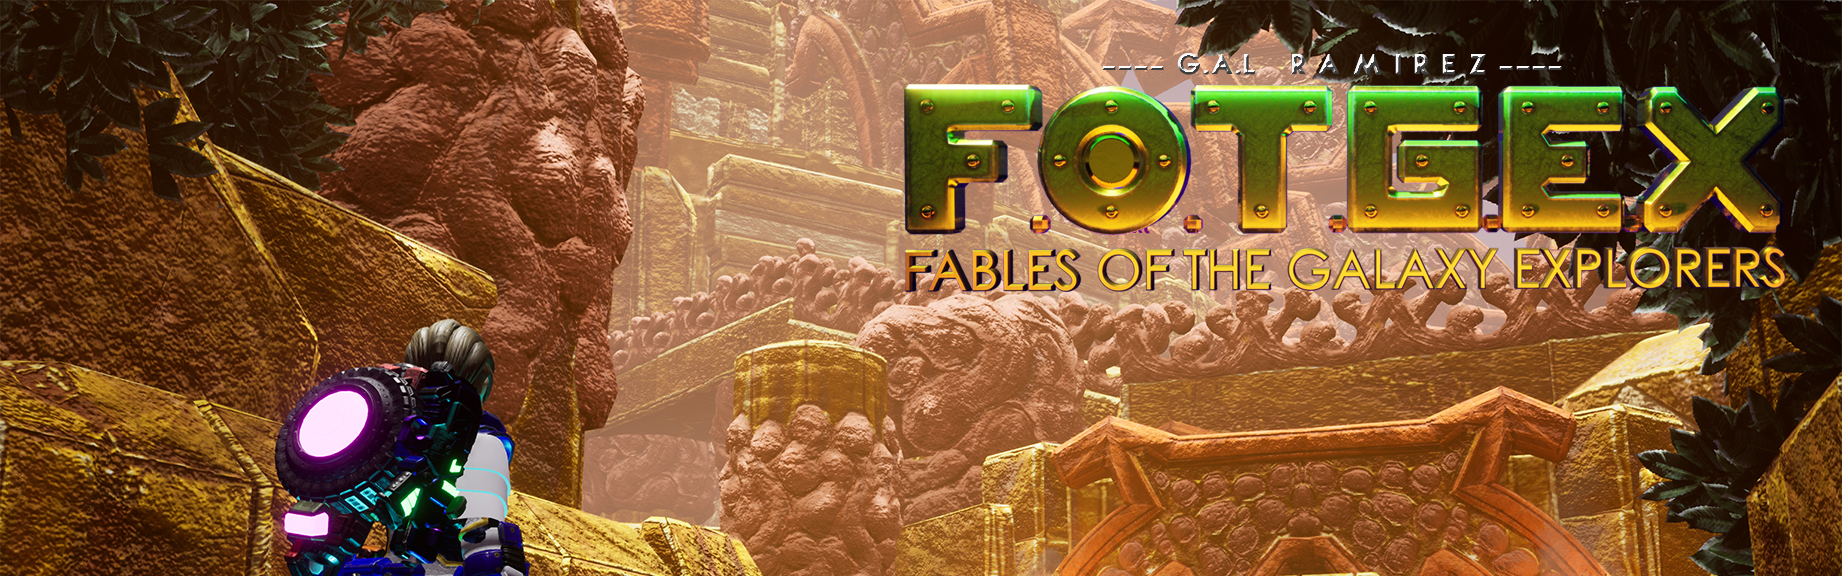 FOTGEX - Fables of The Galaxy Explorers